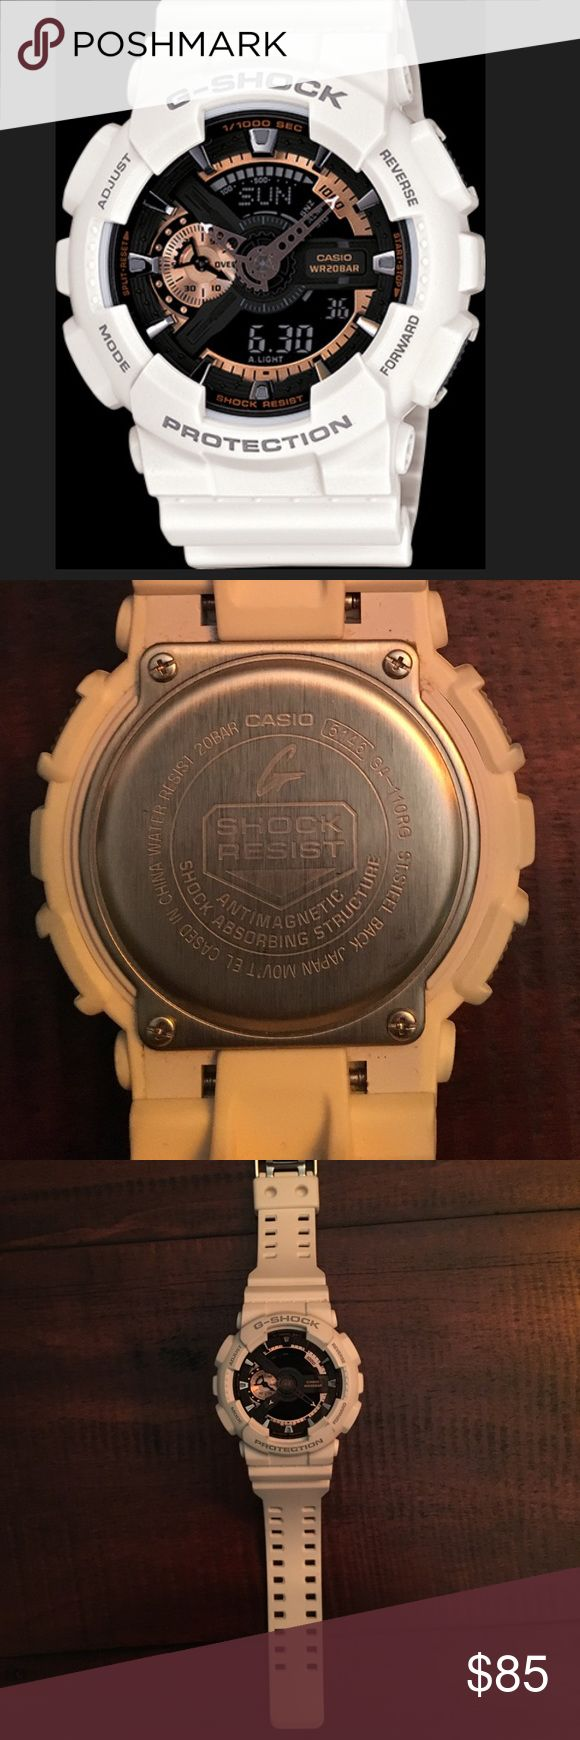 "Casio G-Shock Men's White Watch Casio G-Shock Men's watch. In excellent condition - very minor color discoloration on corners near where it says ""protection"". Style: 5146 GA-110RG. Great buy from a 5 star seller star ⭐️ ⭐️⭐️⭐️⭐️ Casio Accessories Watches"